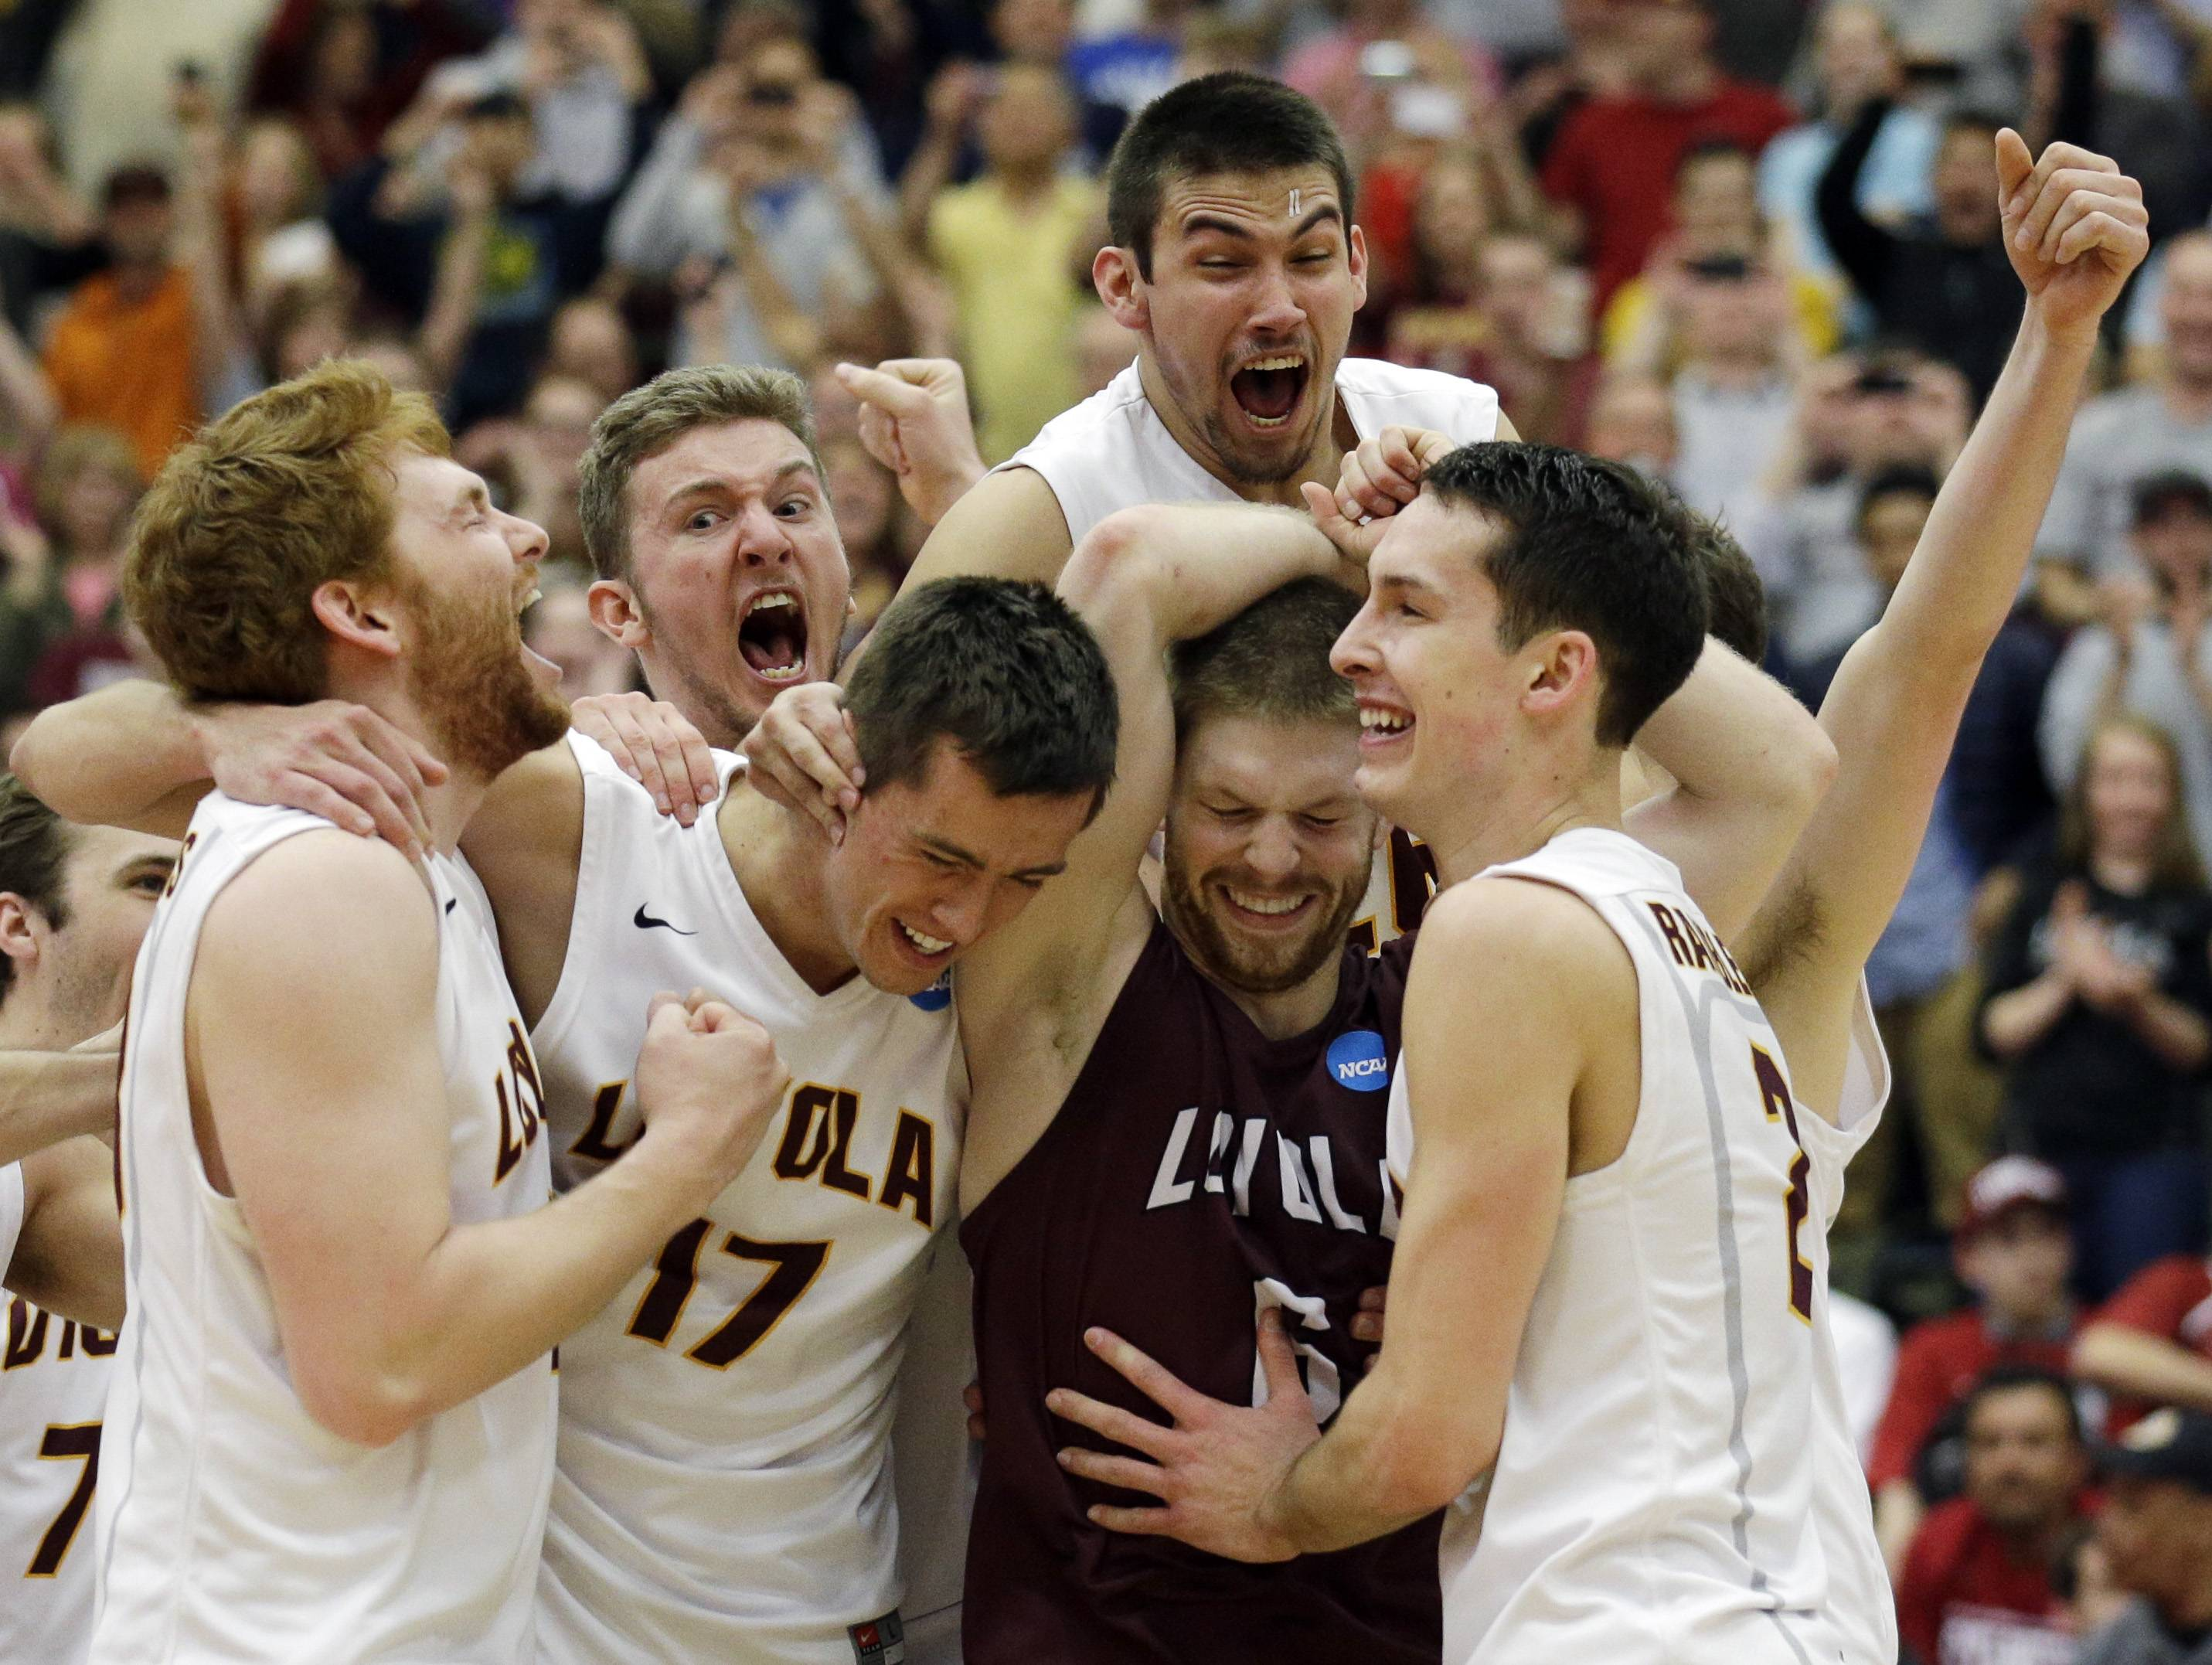 Loyola players celebrate Saturday after they defeated Stanford 3-1 in the NCAA men's volleyball championship at Gentile Arena.